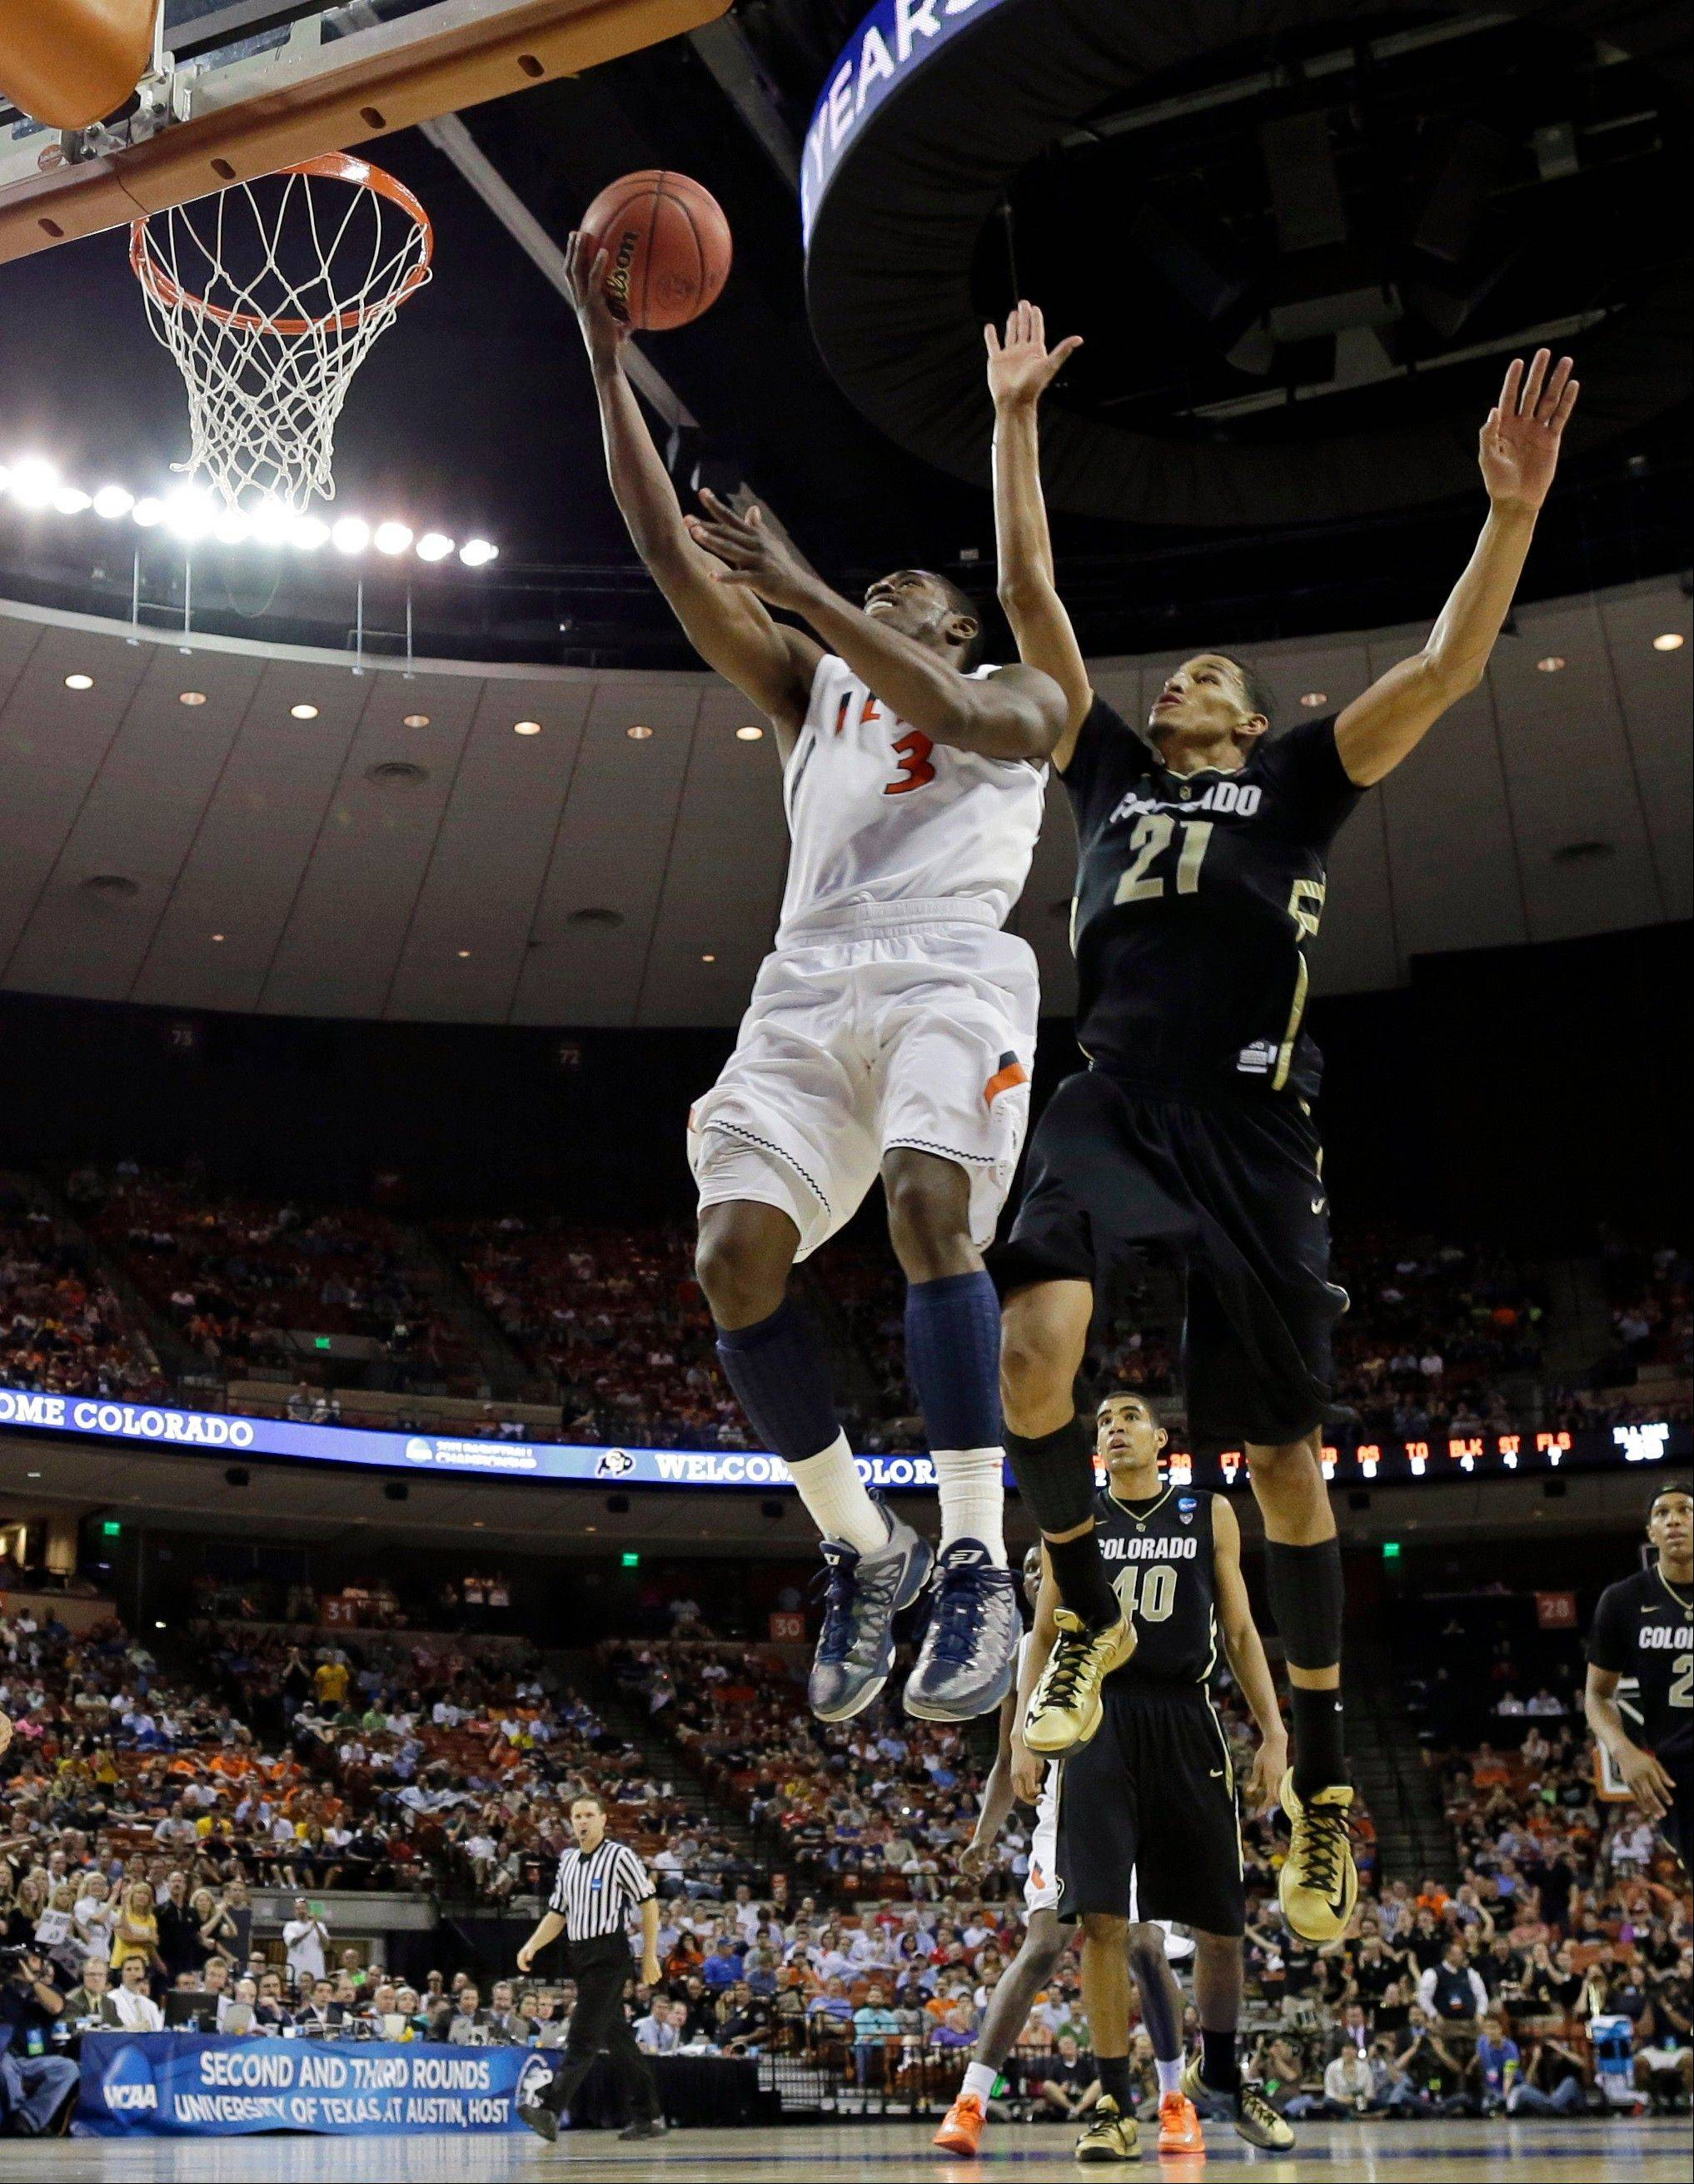 Illinois' Brandon Paul (3) goes up for a shot as Colorado's Andre Roberson (21) defends during the second half of a second-round game of the NCAA college basketball tournament Friday, March 22, 2013, in Austin, Texas. Illinois beat Colorado 57-49. (AP Photo/David J. Phillip)